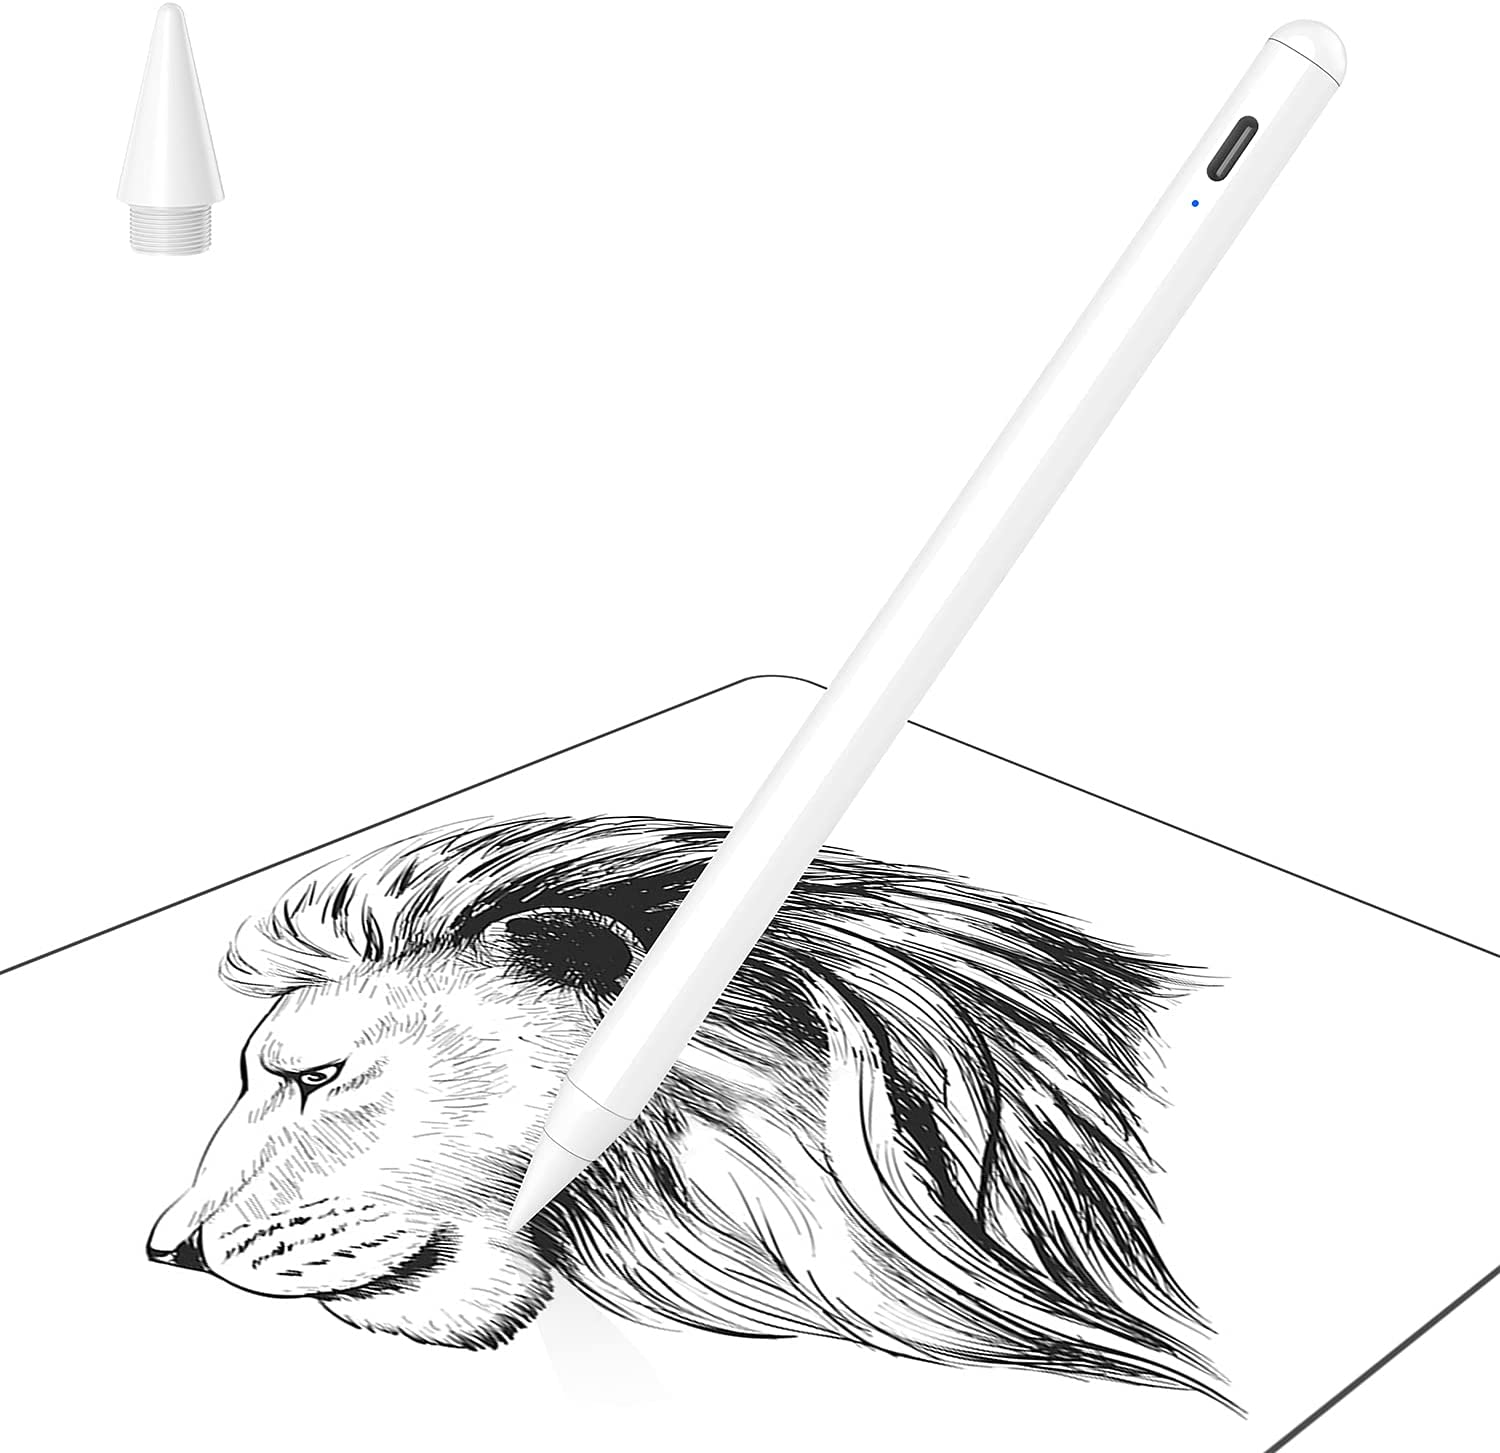 Soke Stylus Pen for iPad Touch Screen with Palm Rejection, Active Pencil Compatible with Apple iPad Pro 11/12.9 Inch, iPad 6/7/8th, iPad Air 3rd/4th, iPad Mini 6th/5th Generation for Writing/Drawing